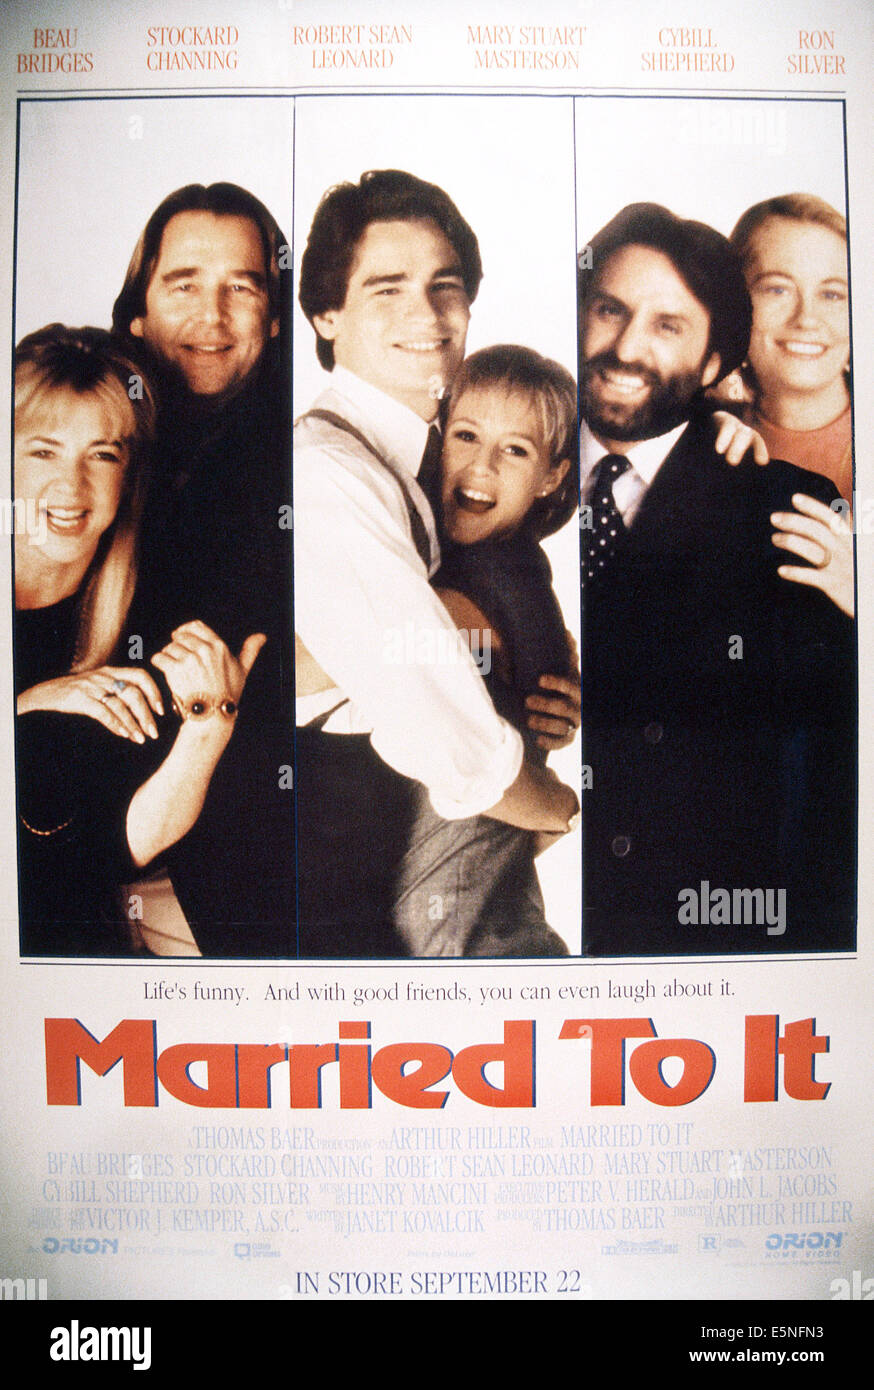 MARRIED TO IT, from left: Stockard Channing, Beau Bridges, Robert Sean Leonard, Mary Stuart Masterson, Ron Silver, Stock Photo